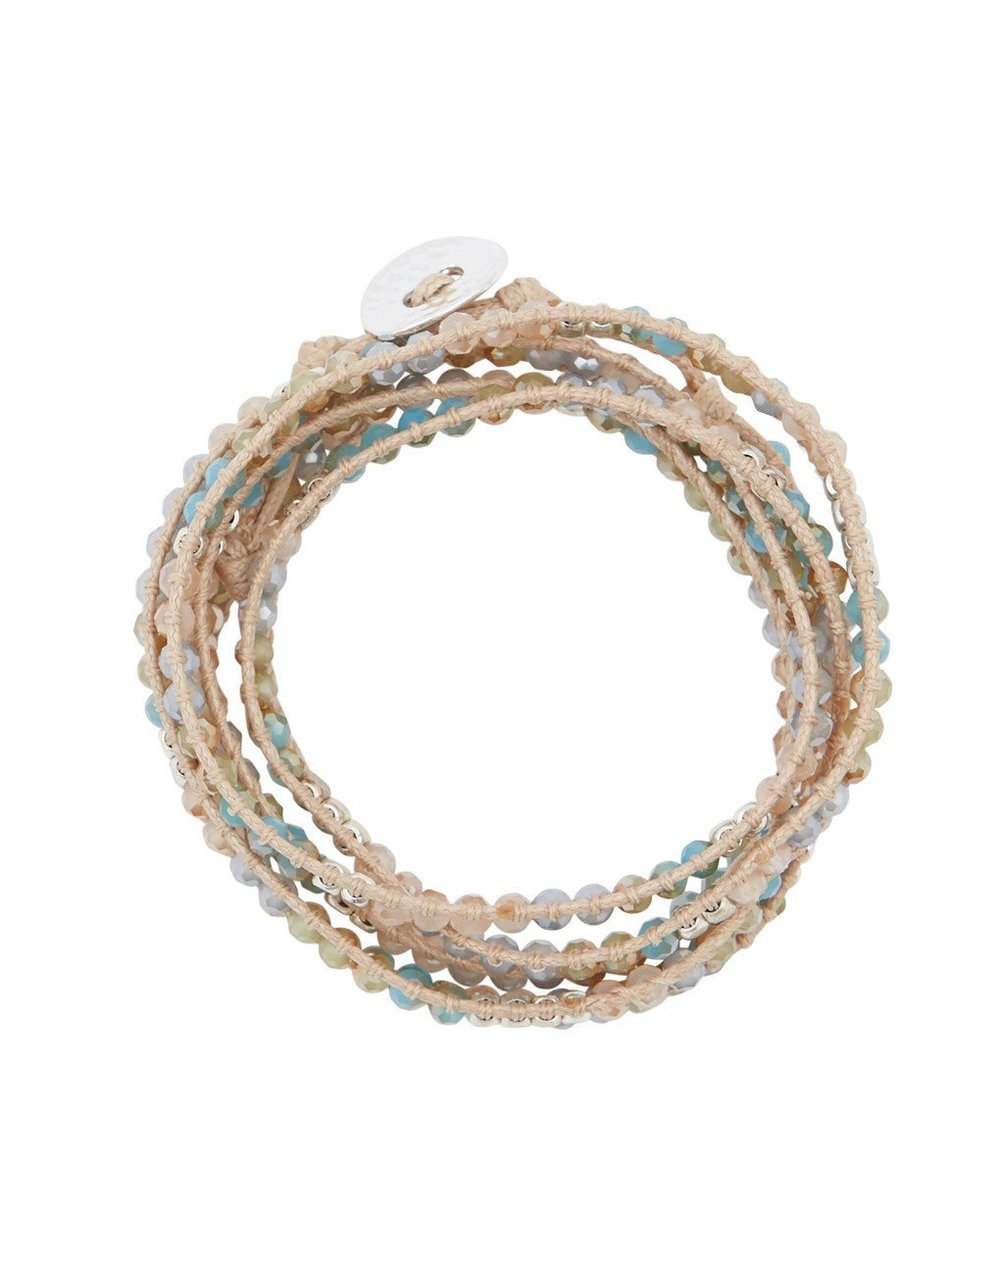 THE LITTLE MARKT   Stone & Crystal Wrap Bracelet - Wind